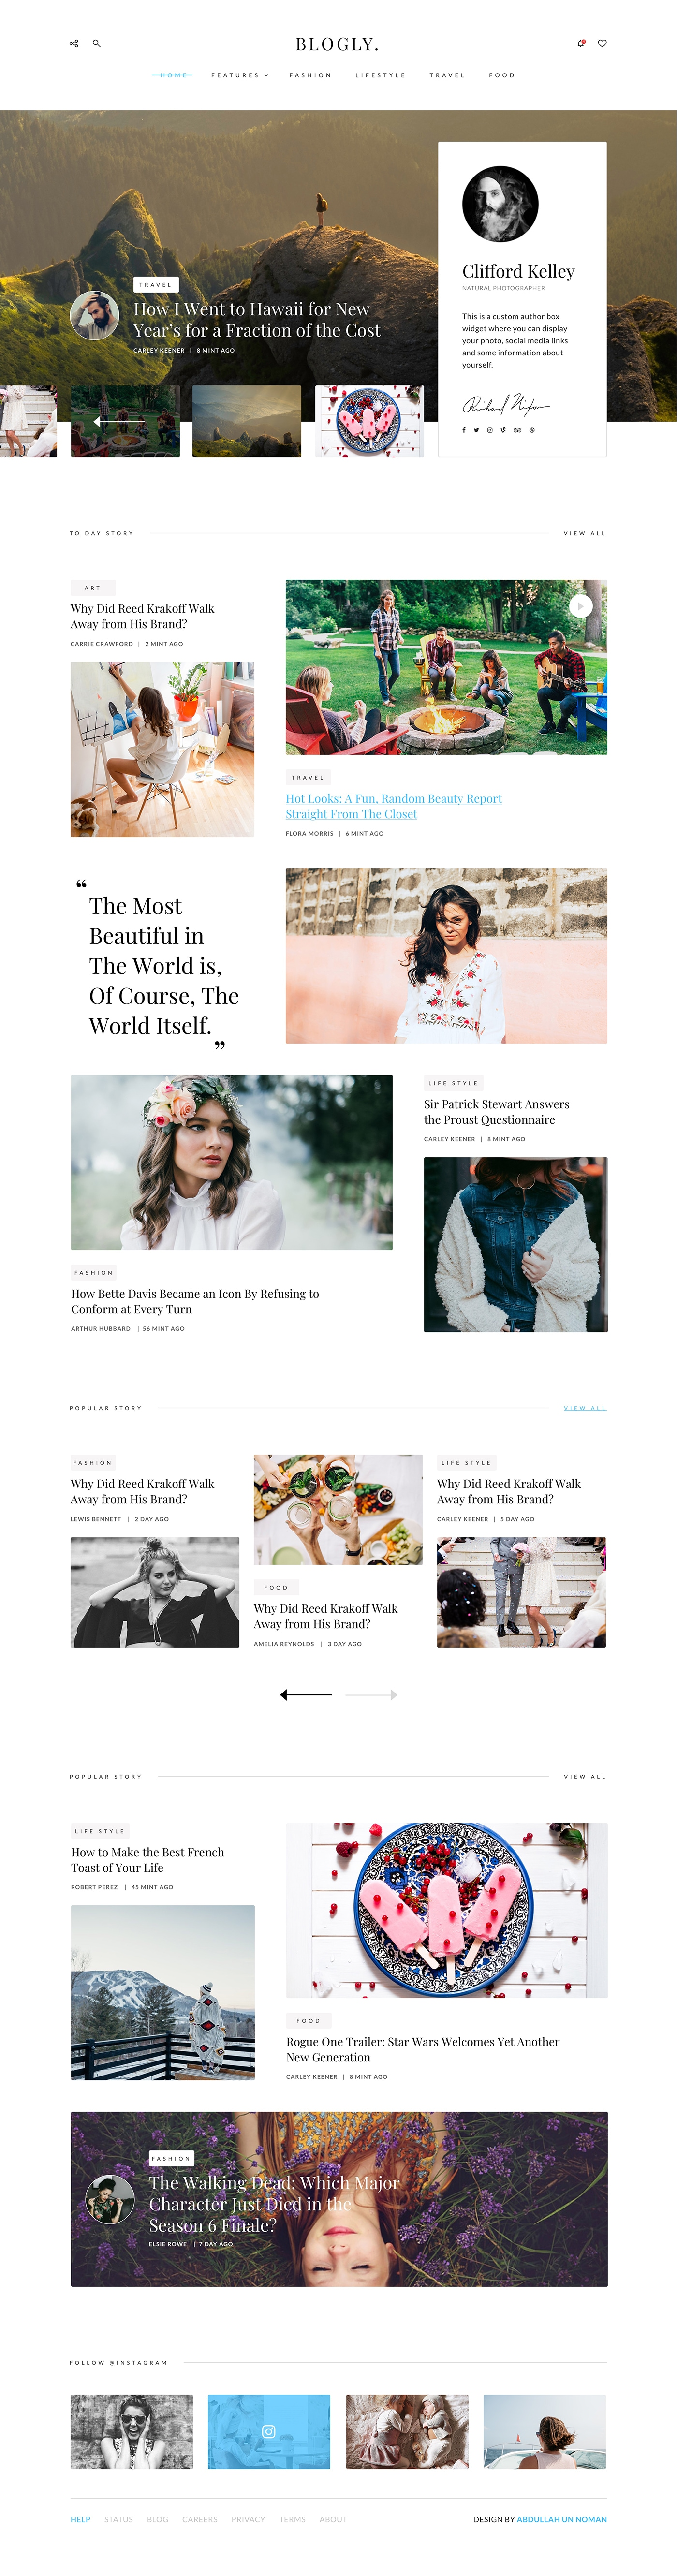 Blogly Theme - Clean and beautiful landing page, designed by Abdullah Un Noman